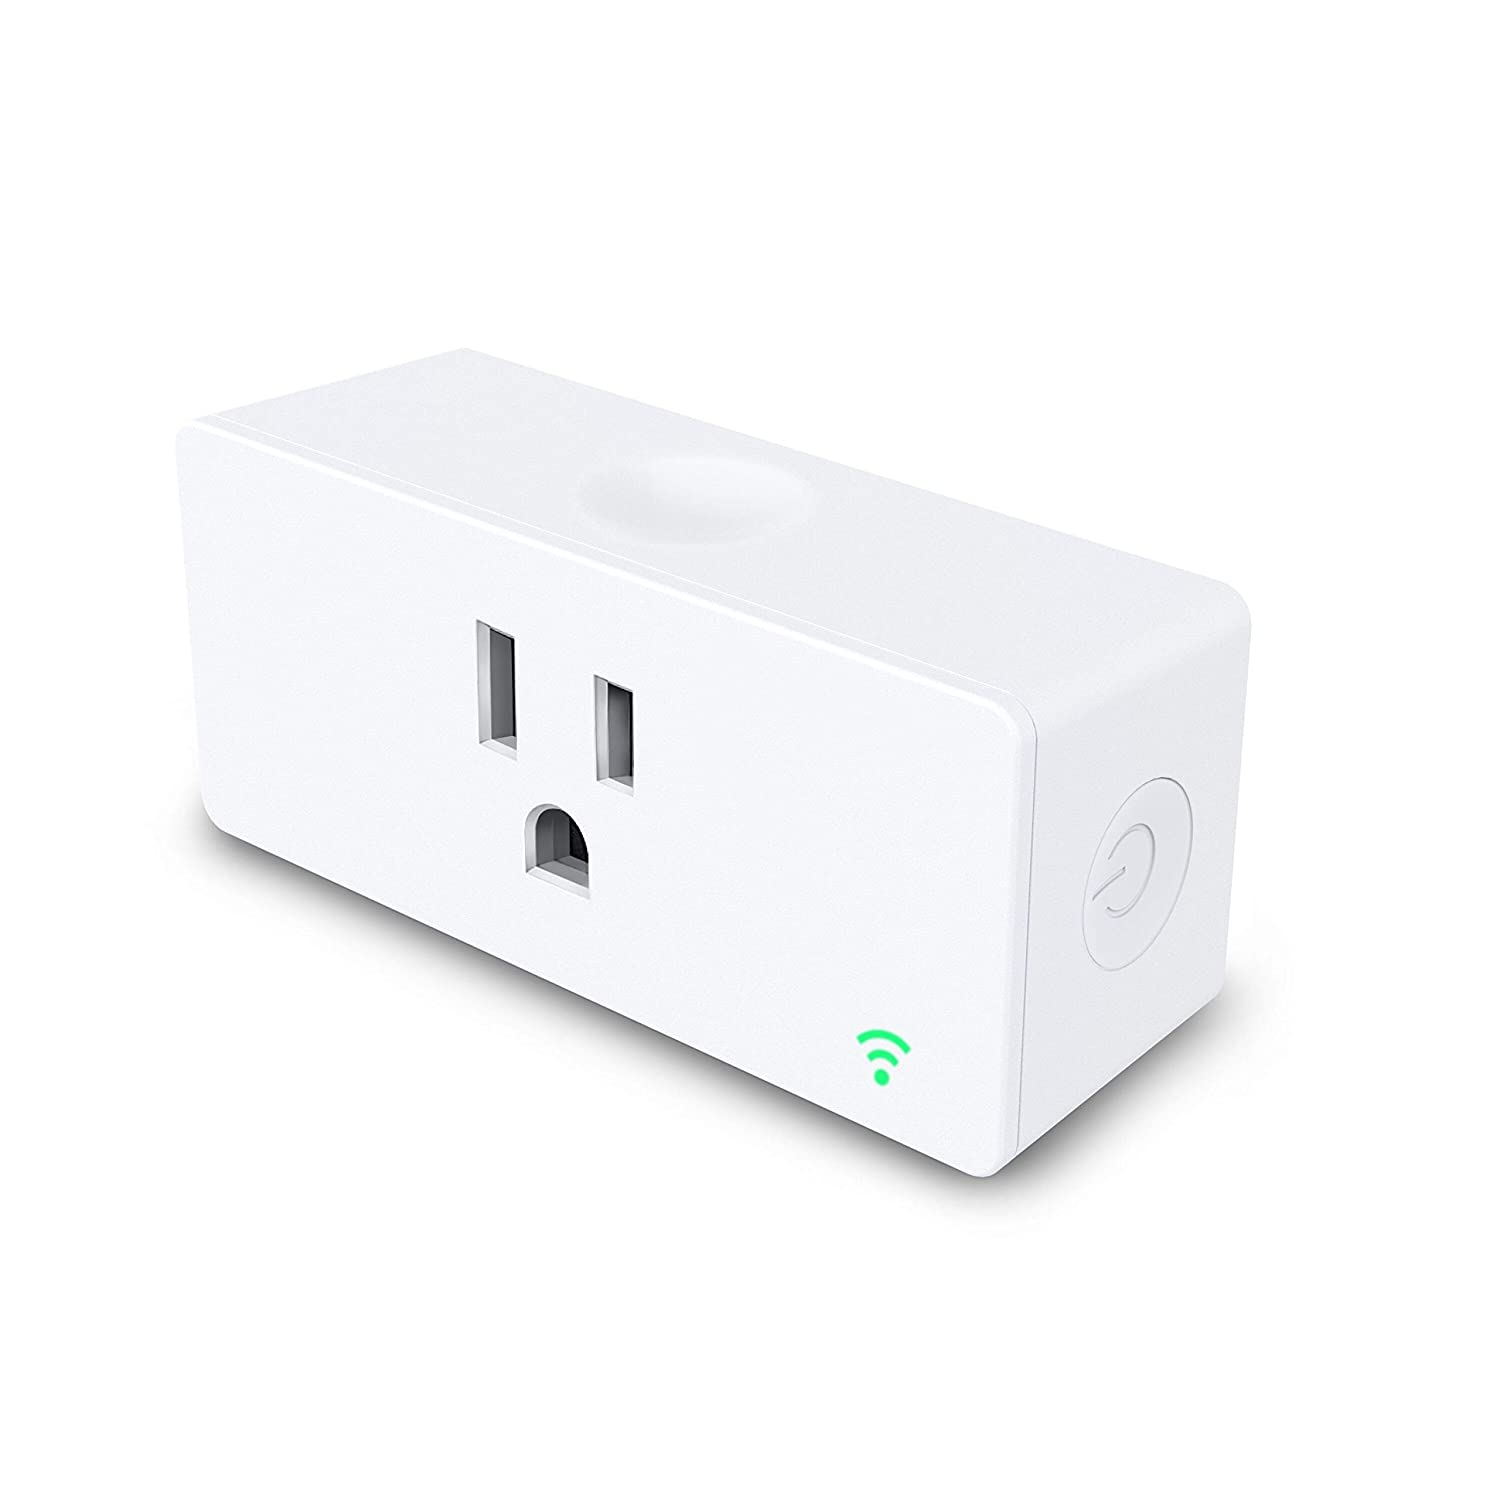 Esicoo Smart Wi-Fi Plug Mini Outlet, Control Your Devices from Anywhere, No Hub Required, Woks with Alexa and Google Assistant